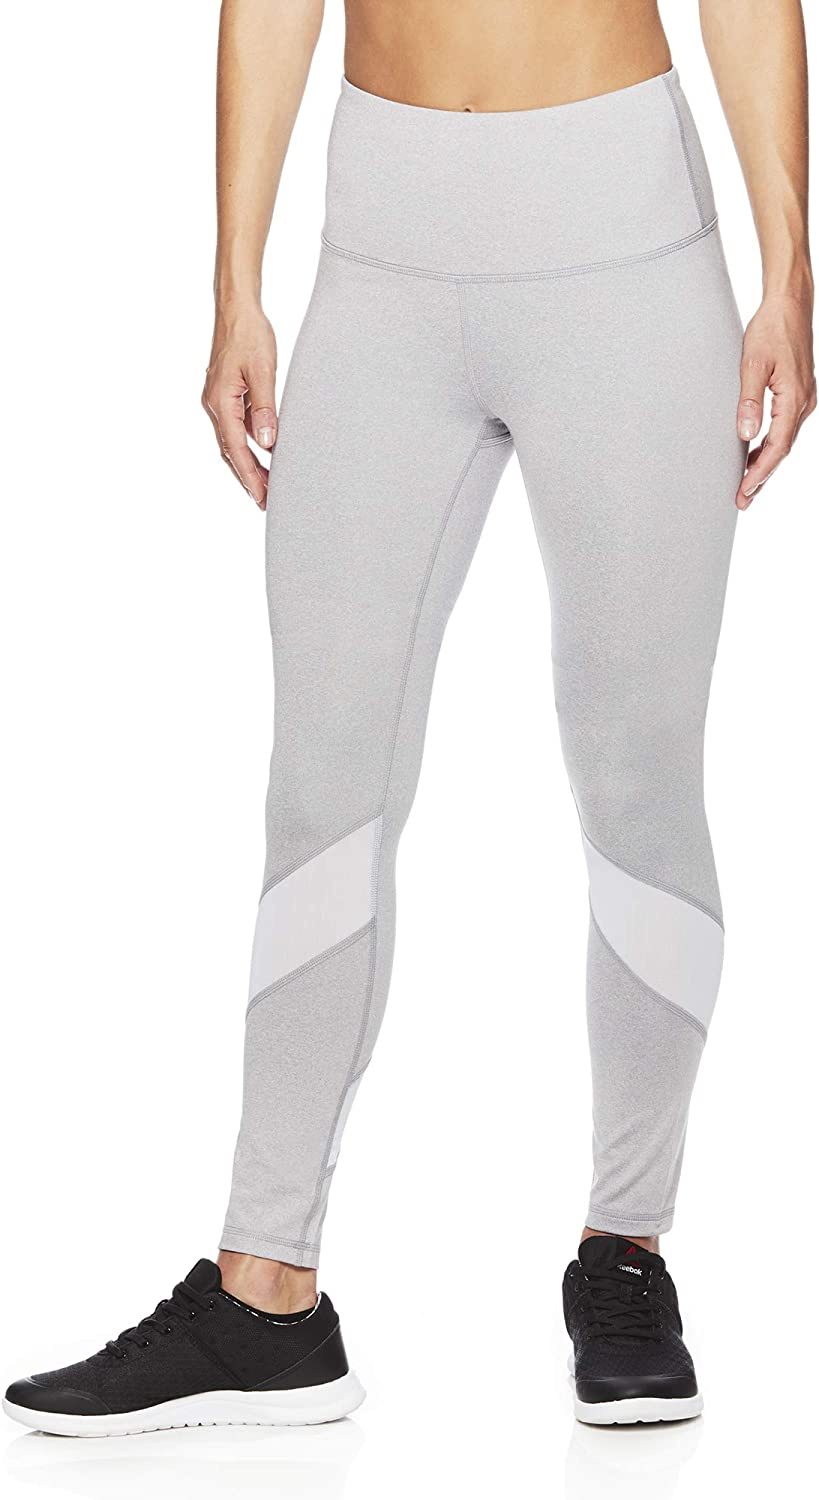 Amazon Com Reebok Women S High Rise Workout Leggings High Waisted Yoga Fitness Athletic Compression Pants Clothing